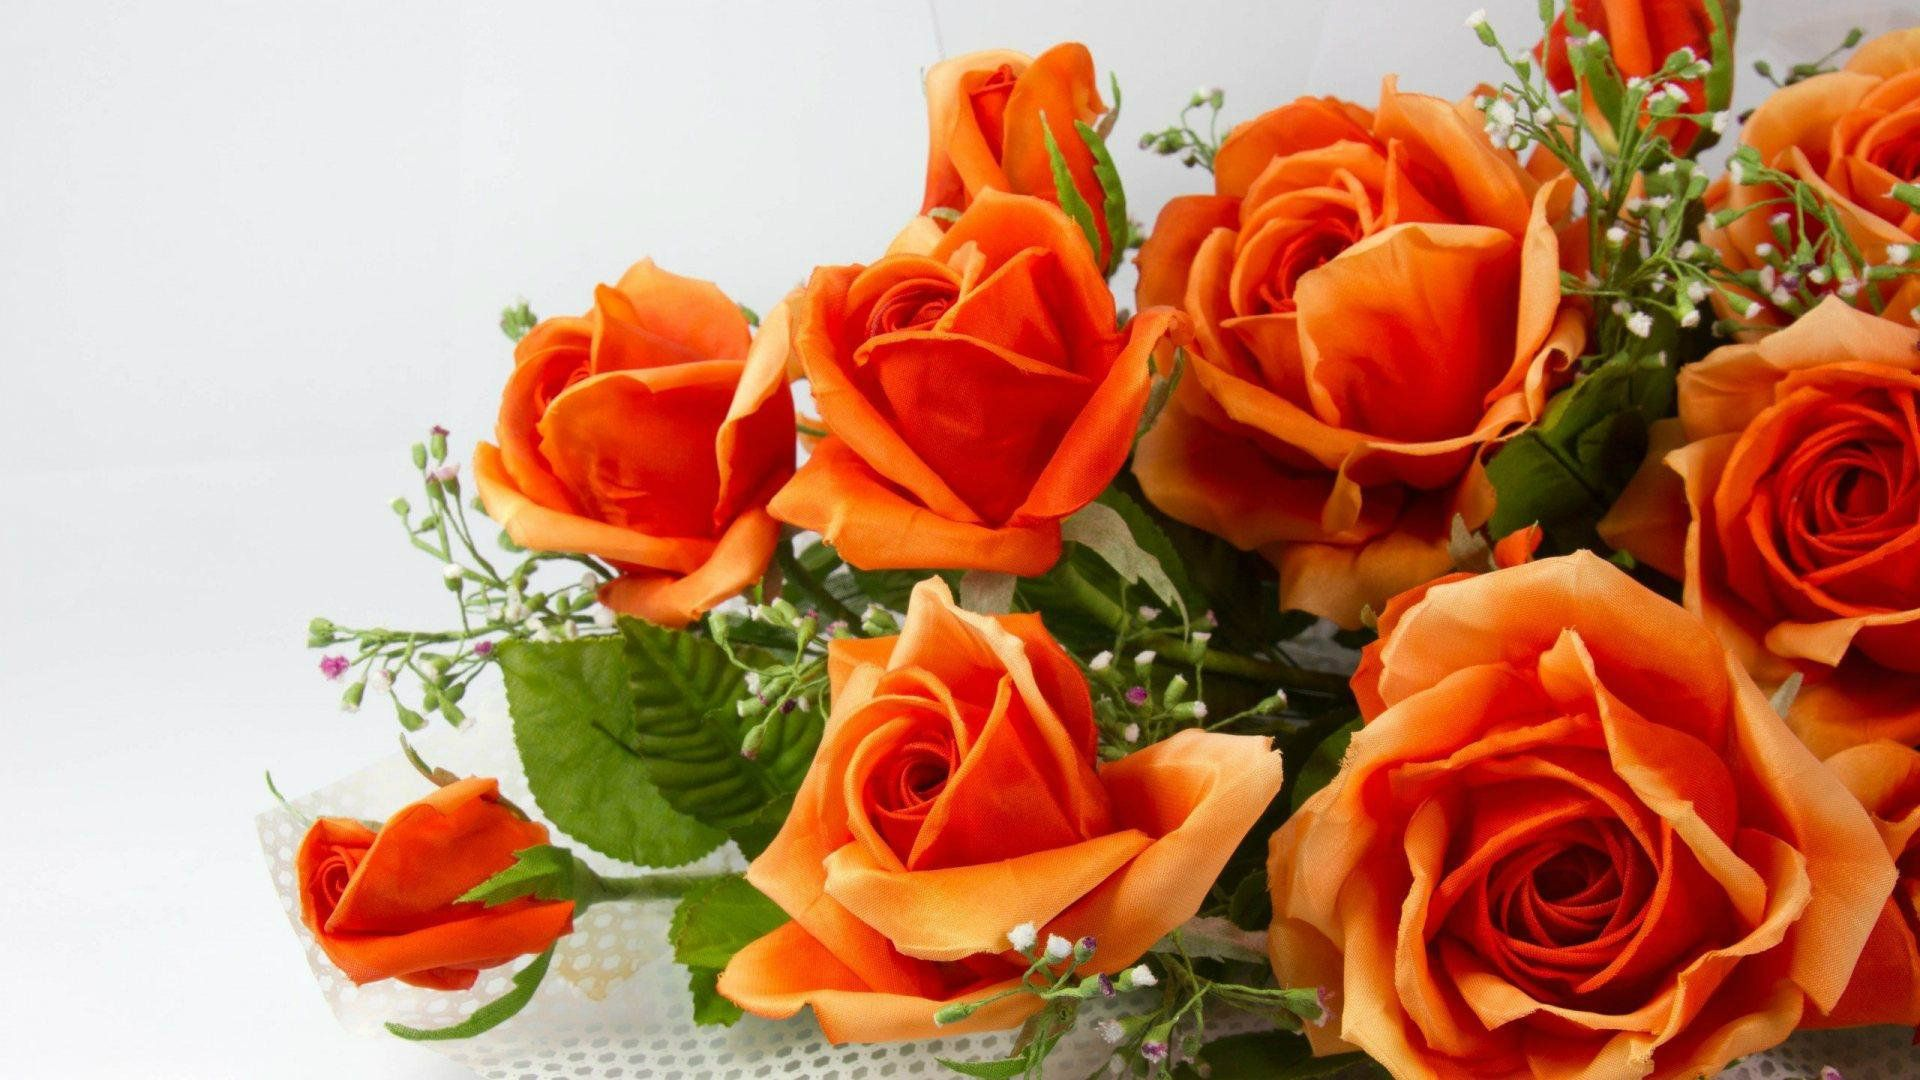 Flowers play a very important role in live. The beauty of flowers ...